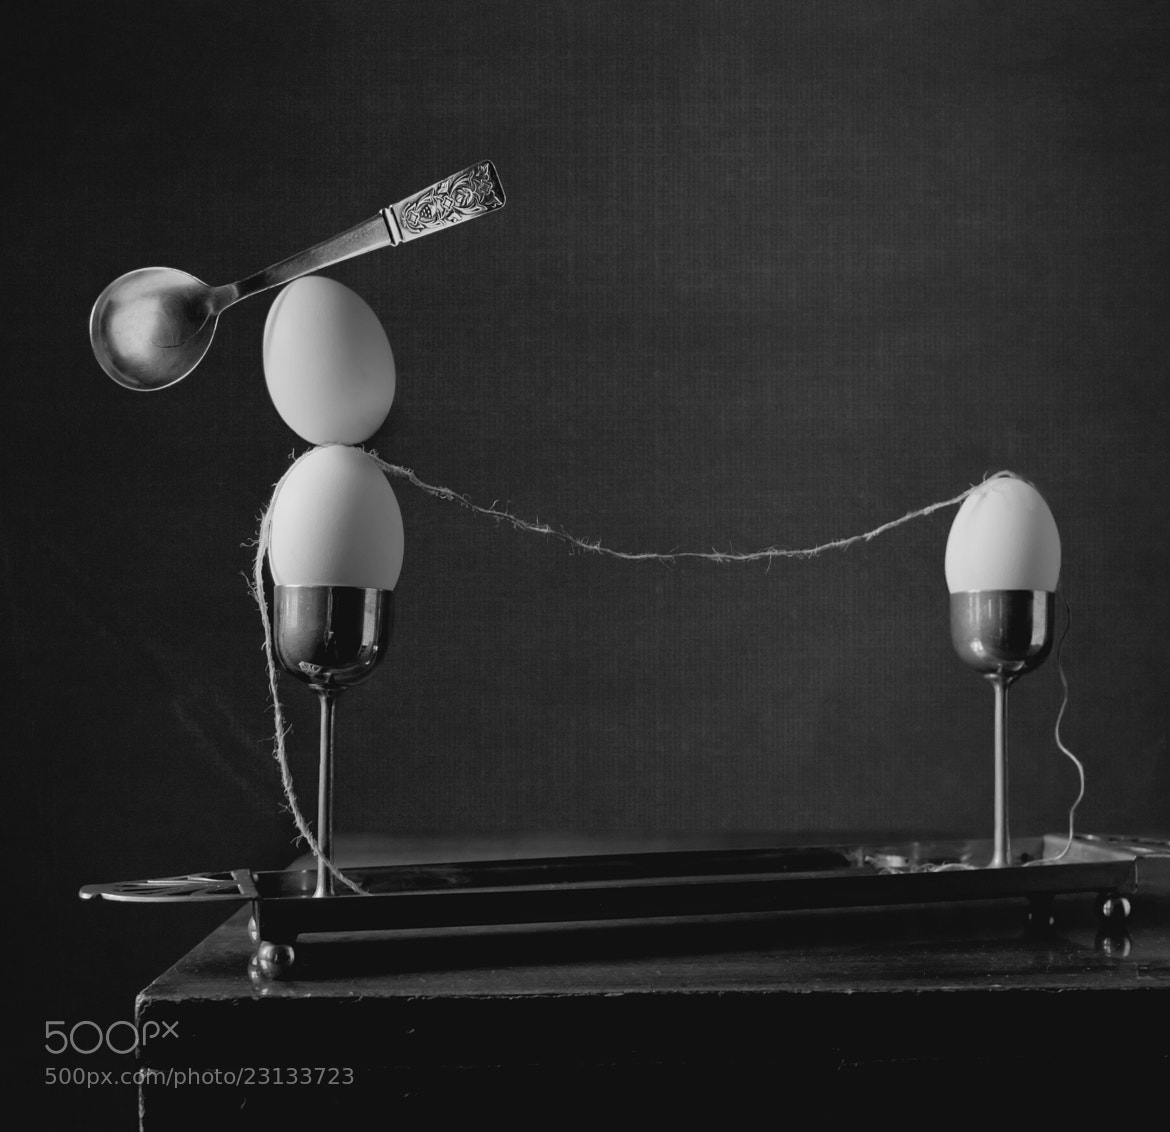 Photograph Tightrope walker  by Viktoria Imanova on 500px